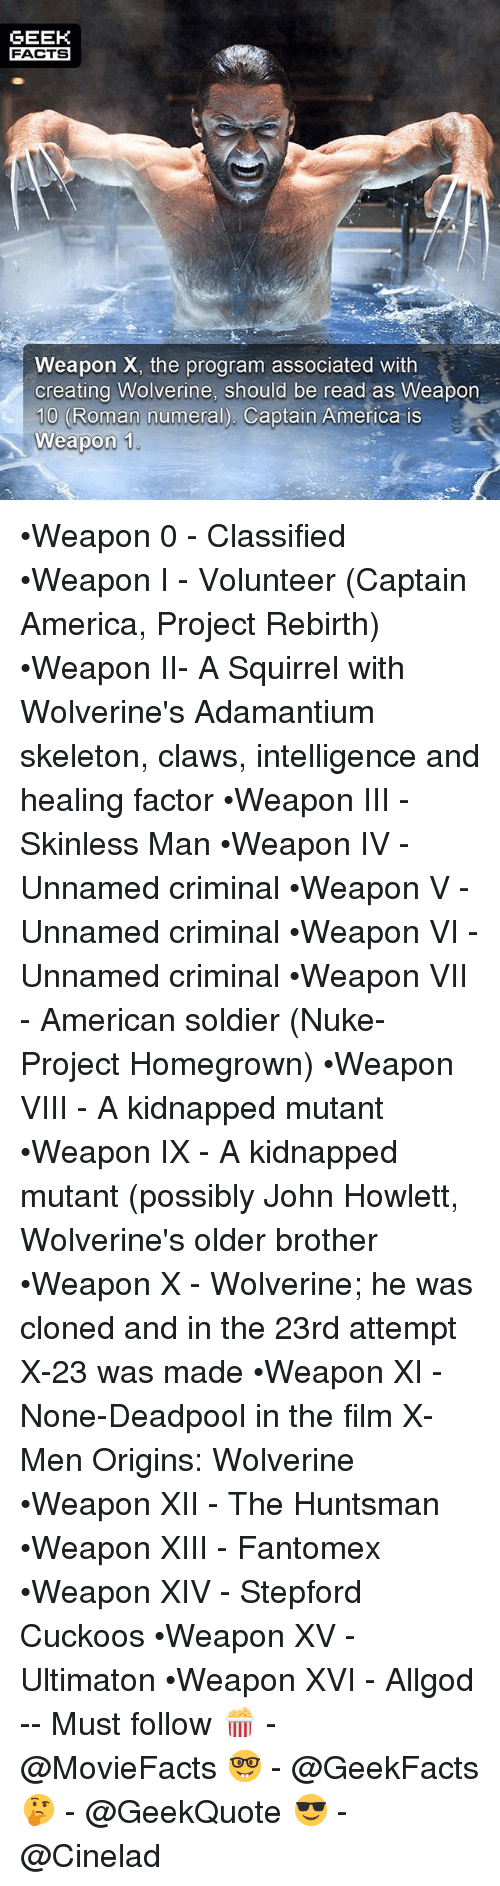 America, Facts, and Memes: GEEK  FACTS  Weapon X, the program associated with  creating Wolverine, should be read as Weapon  10 (Roman numeral). Captain America is  Weapon 1 •Weapon 0 - Classified •Weapon I - Volunteer (Captain America, Project Rebirth) •Weapon II- A Squirrel with Wolverine's Adamantium skeleton, claws, intelligence and healing factor •Weapon III - Skinless Man •Weapon IV - Unnamed criminal •Weapon V - Unnamed criminal •Weapon VI - Unnamed criminal •Weapon VII - American soldier (Nuke-Project Homegrown) •Weapon VIII - A kidnapped mutant •Weapon IX - A kidnapped mutant (possibly John Howlett, Wolverine's older brother •Weapon X - Wolverine; he was cloned and in the 23rd attempt X-23 was made •Weapon XI - None-Deadpool in the film X-Men Origins: Wolverine •Weapon XII - The Huntsman •Weapon XIII - Fantomex •Weapon XIV - Stepford Cuckoos •Weapon XV - Ultimaton •Weapon XVI - Allgod -- Must follow 🍿 - @MovieFacts 🤓 - @GeekFacts 🤔 - @GeekQuote 😎 - @Cinelad